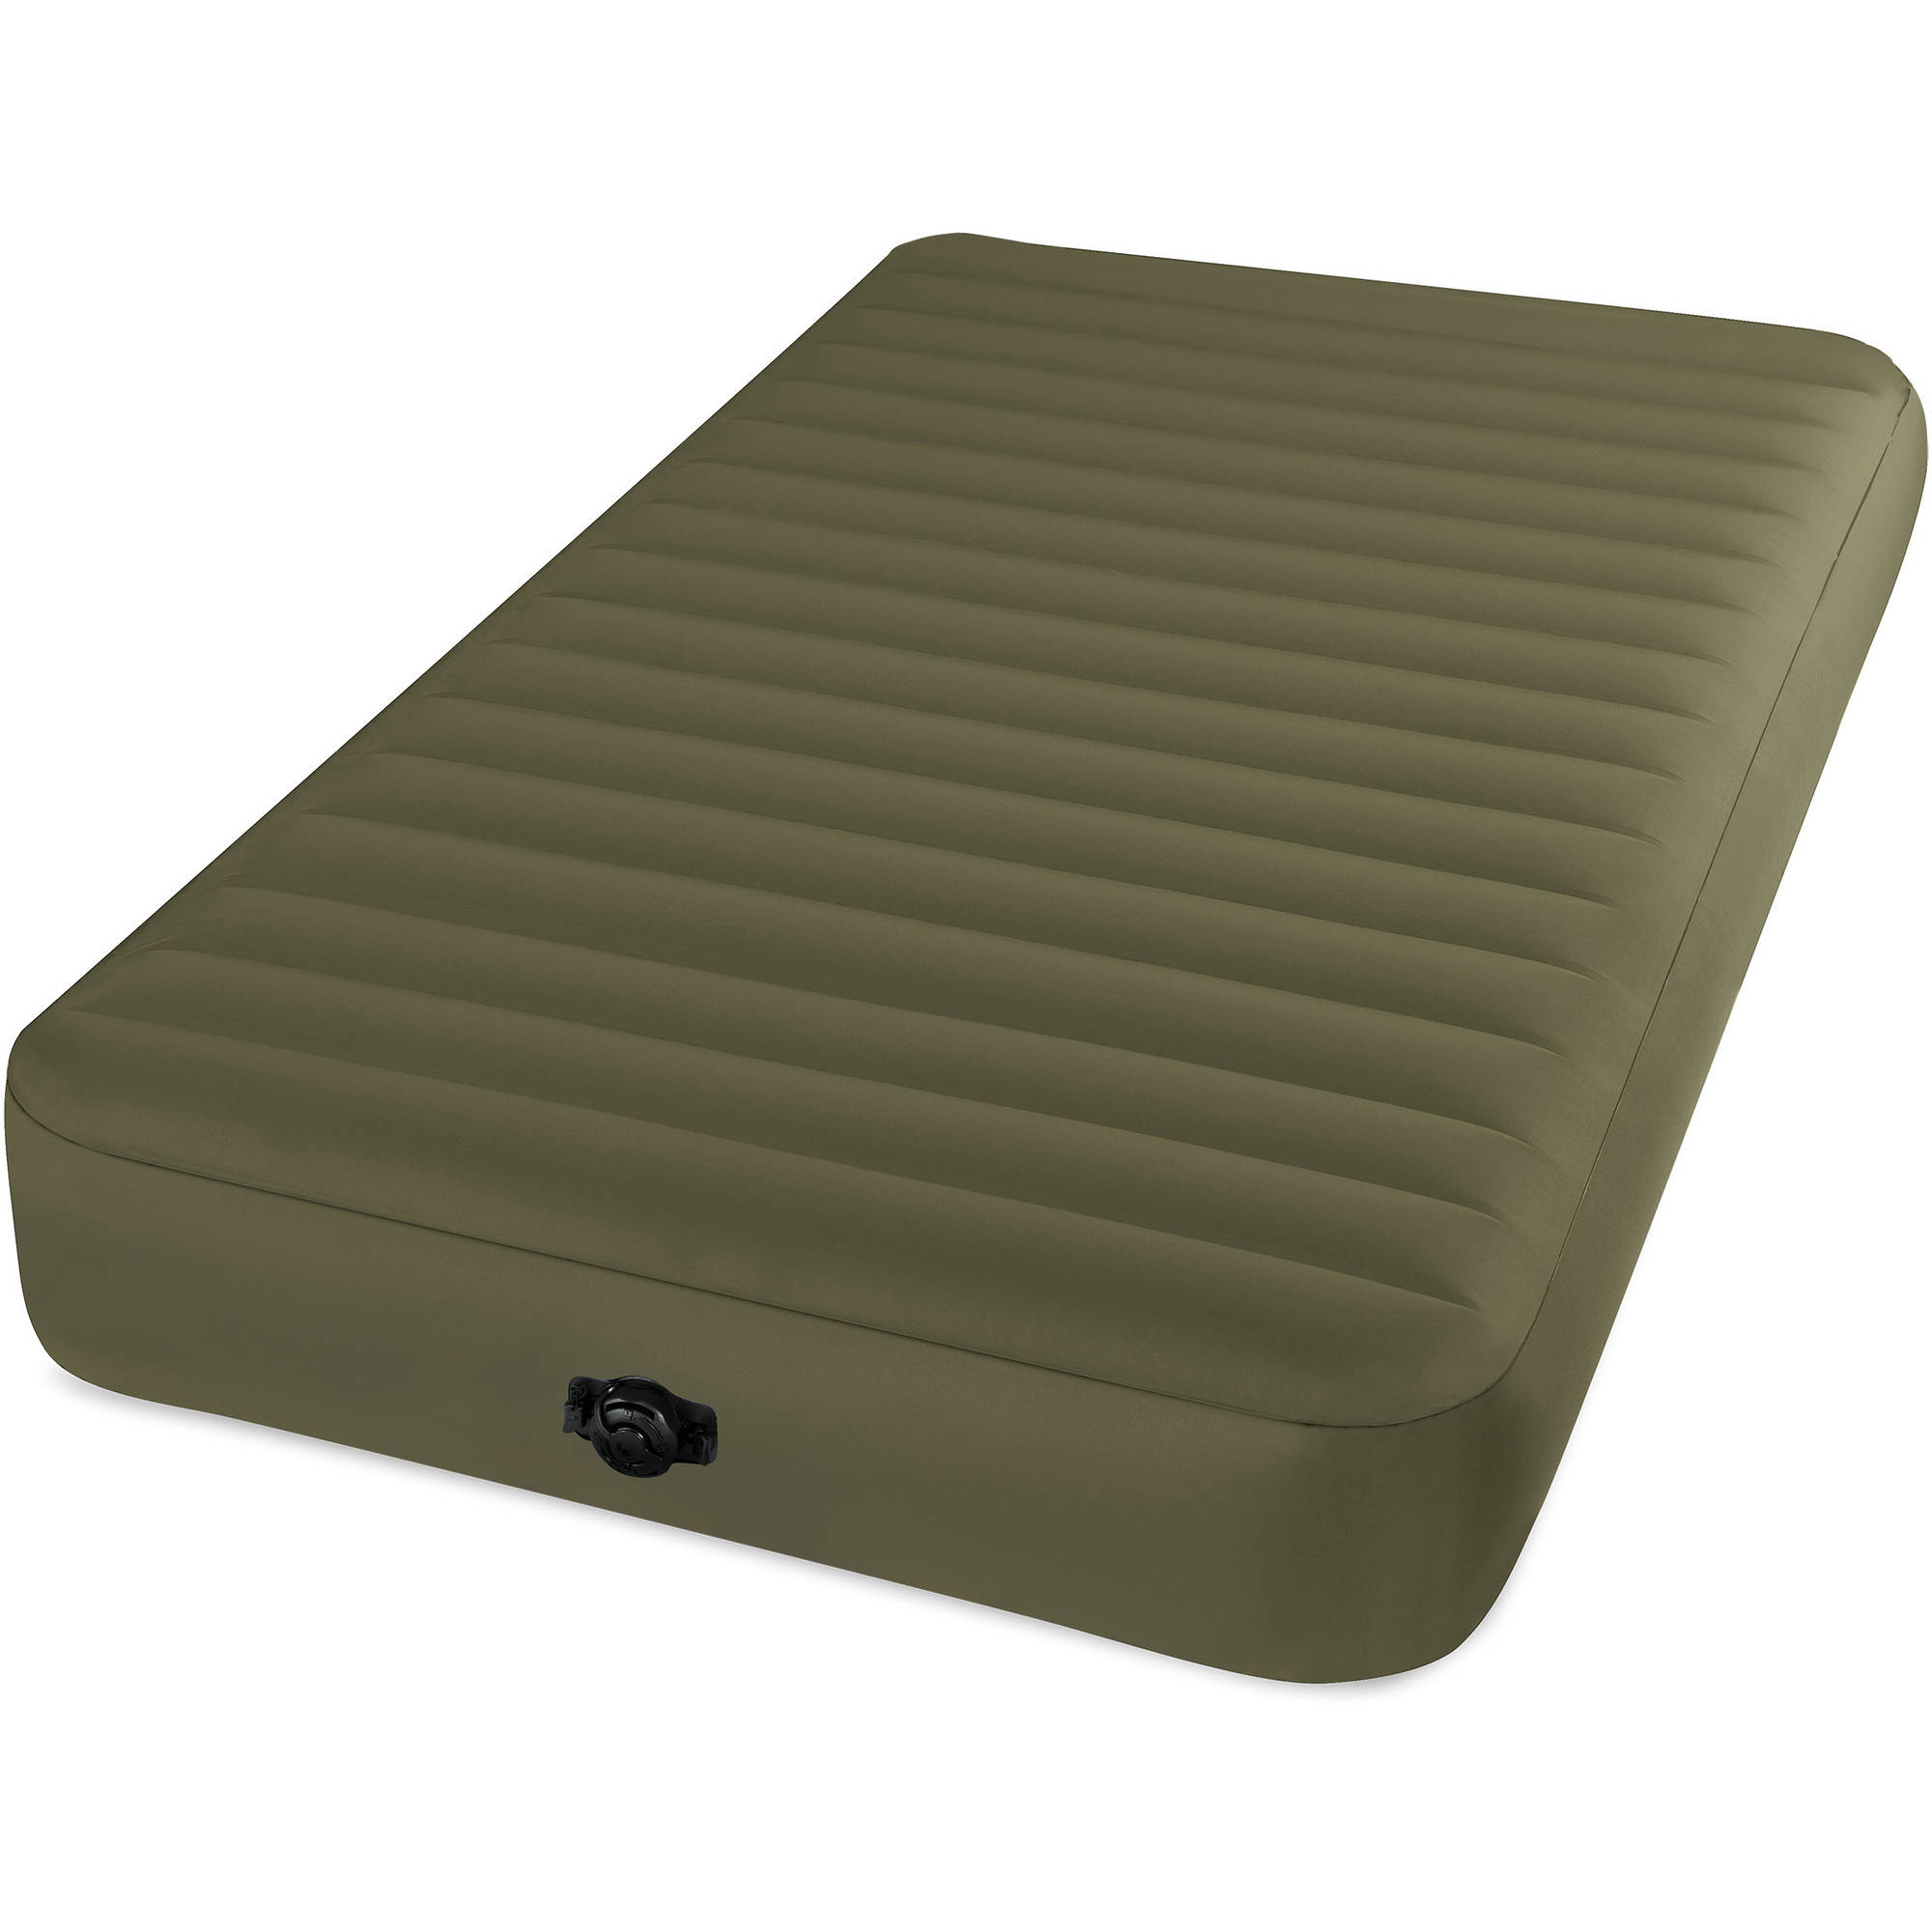 "Intex Twin 8"" Super Tough Inflatable Airbed Mattress"